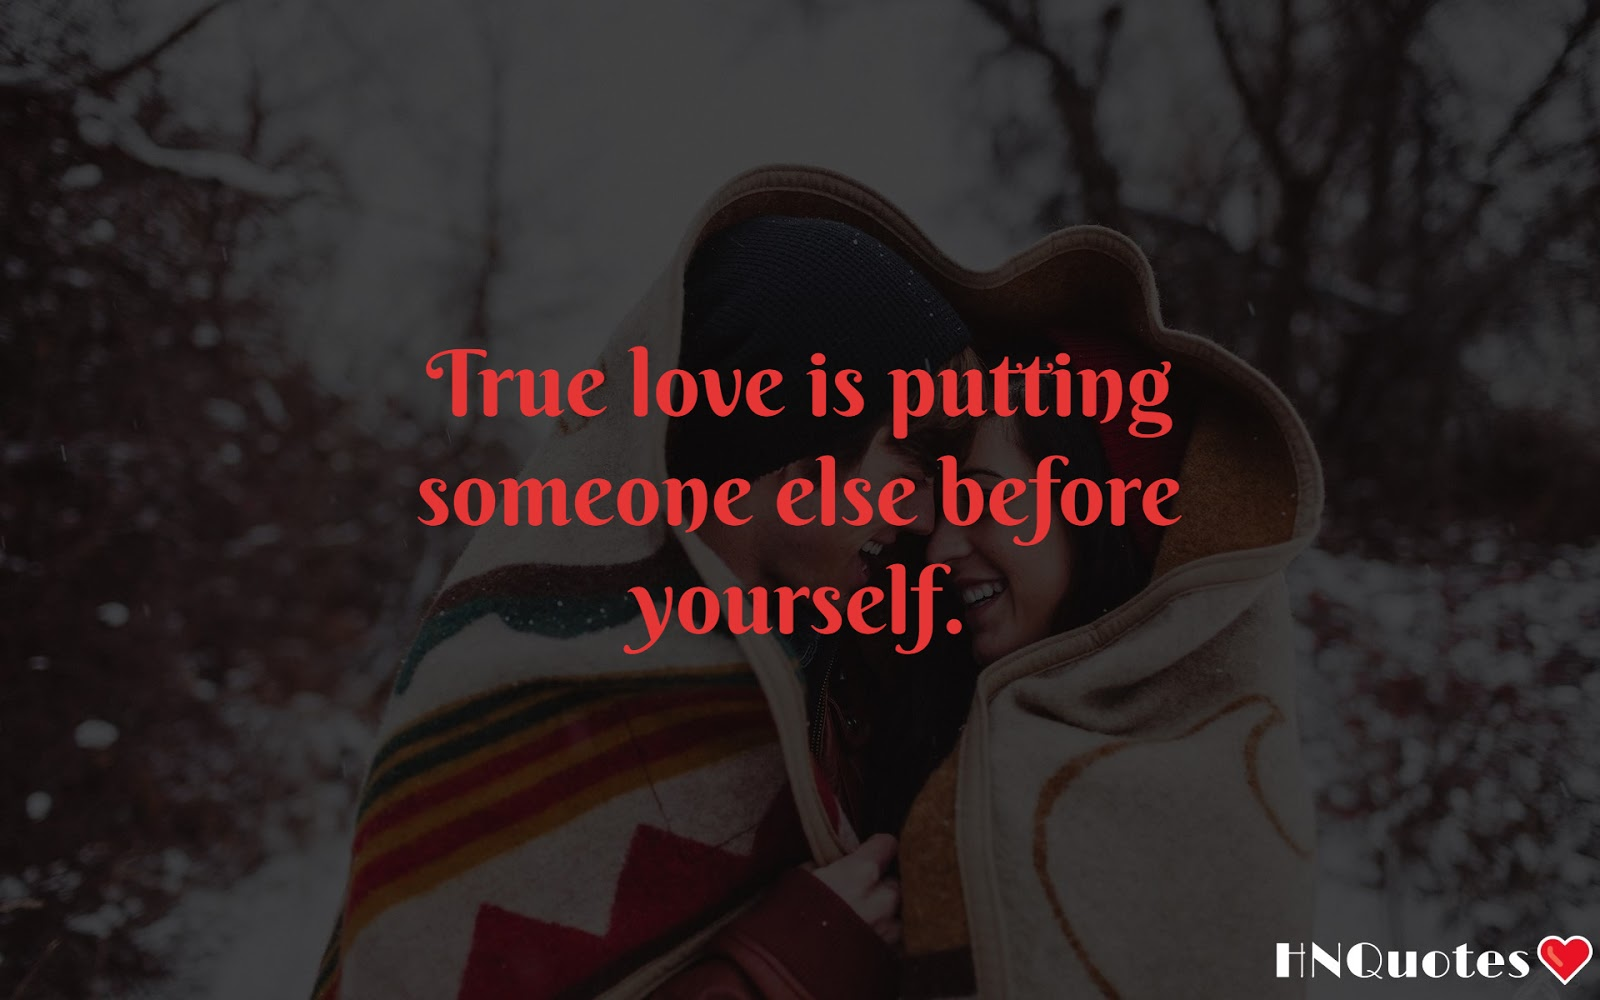 Romantic-Quotes-about-Love-Forever-I-Love-You-68-[HNQuotes]